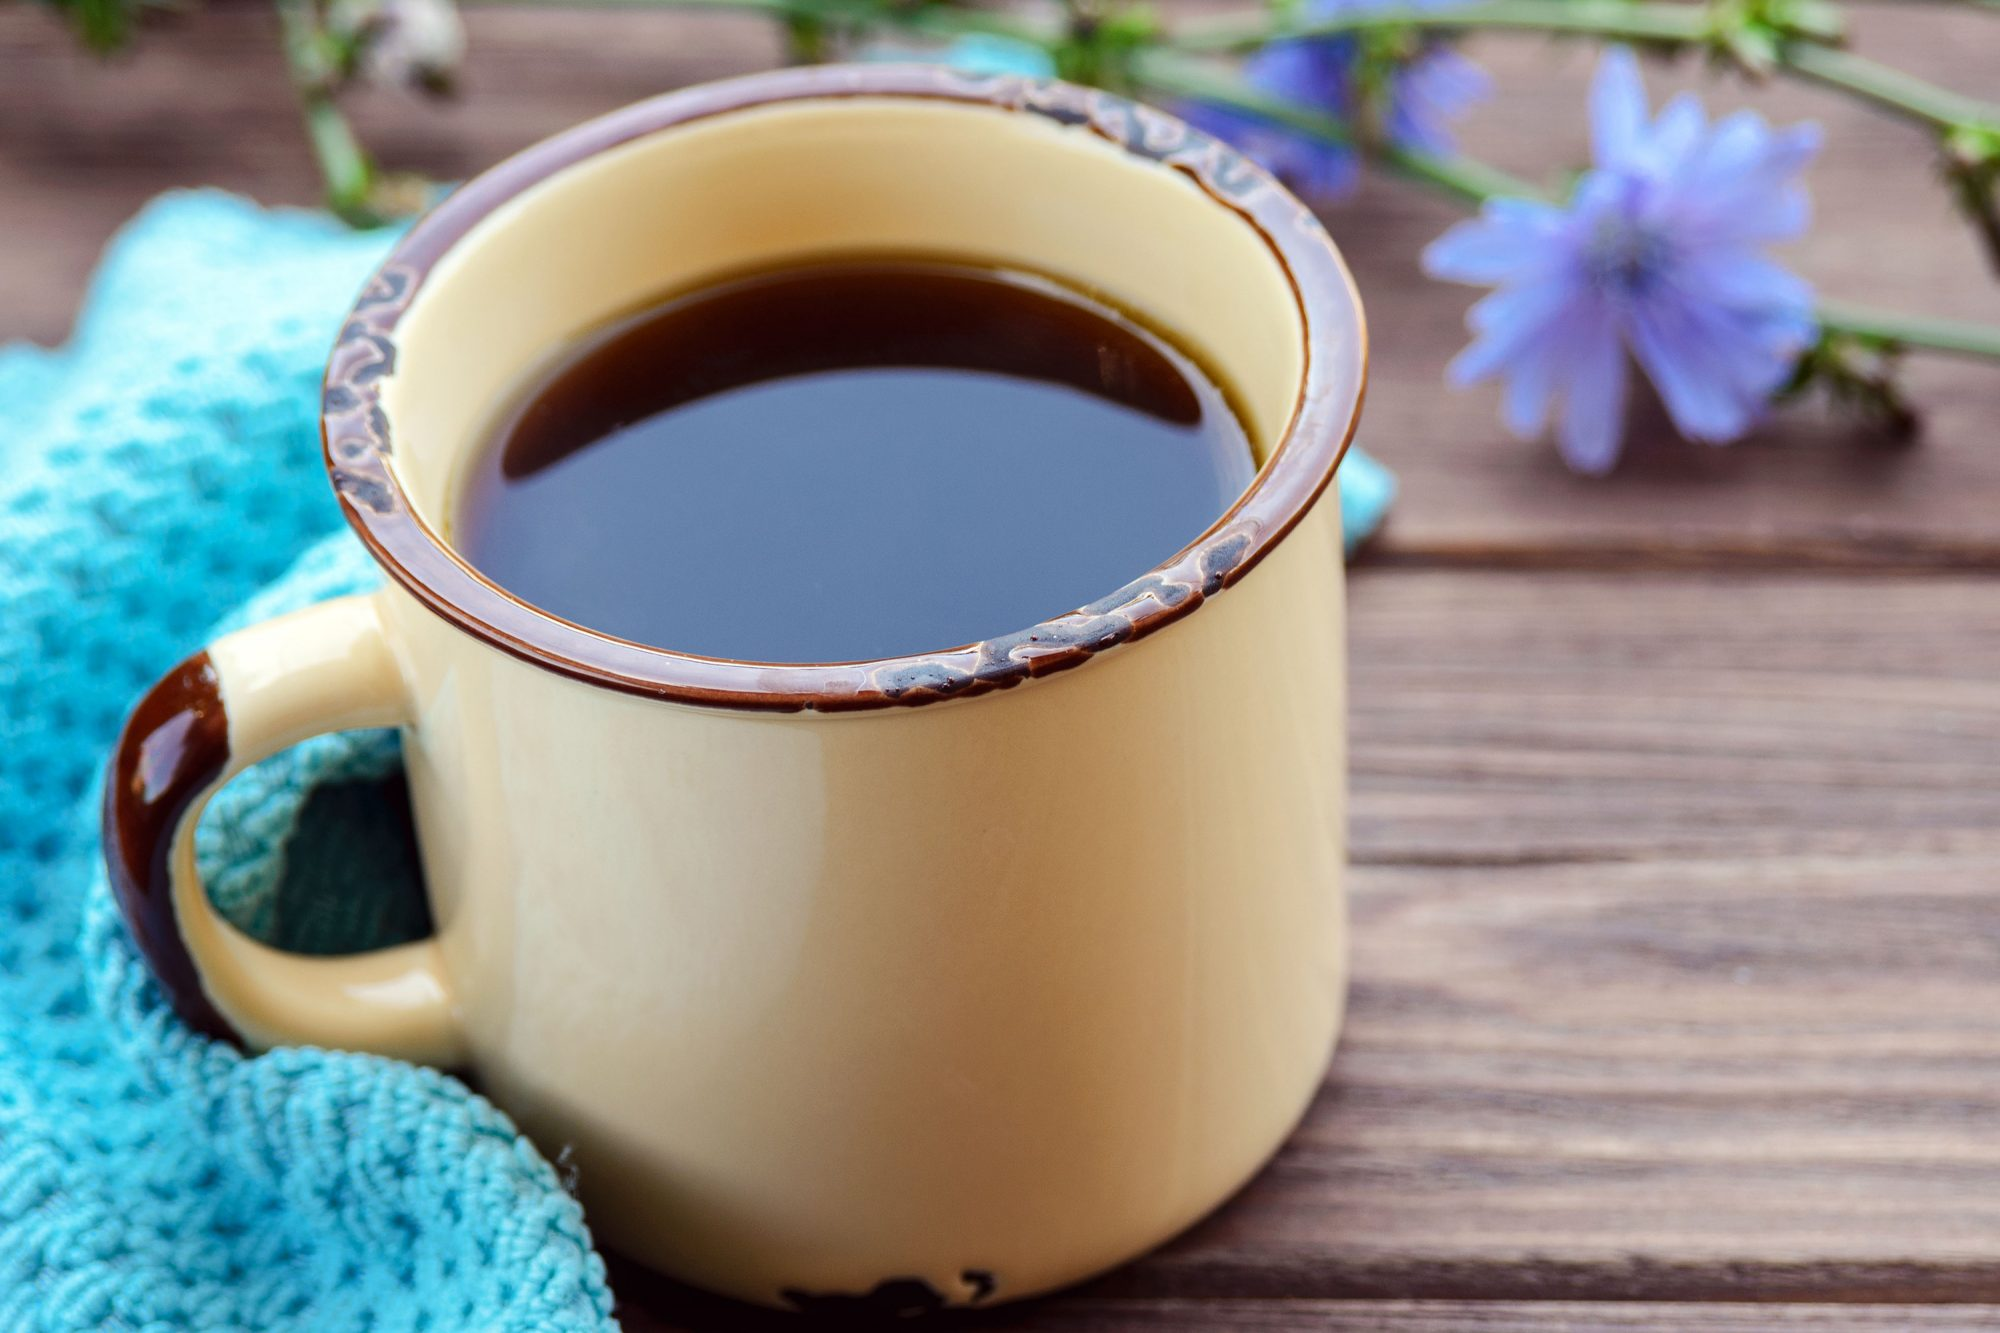 Chicory root in a mug